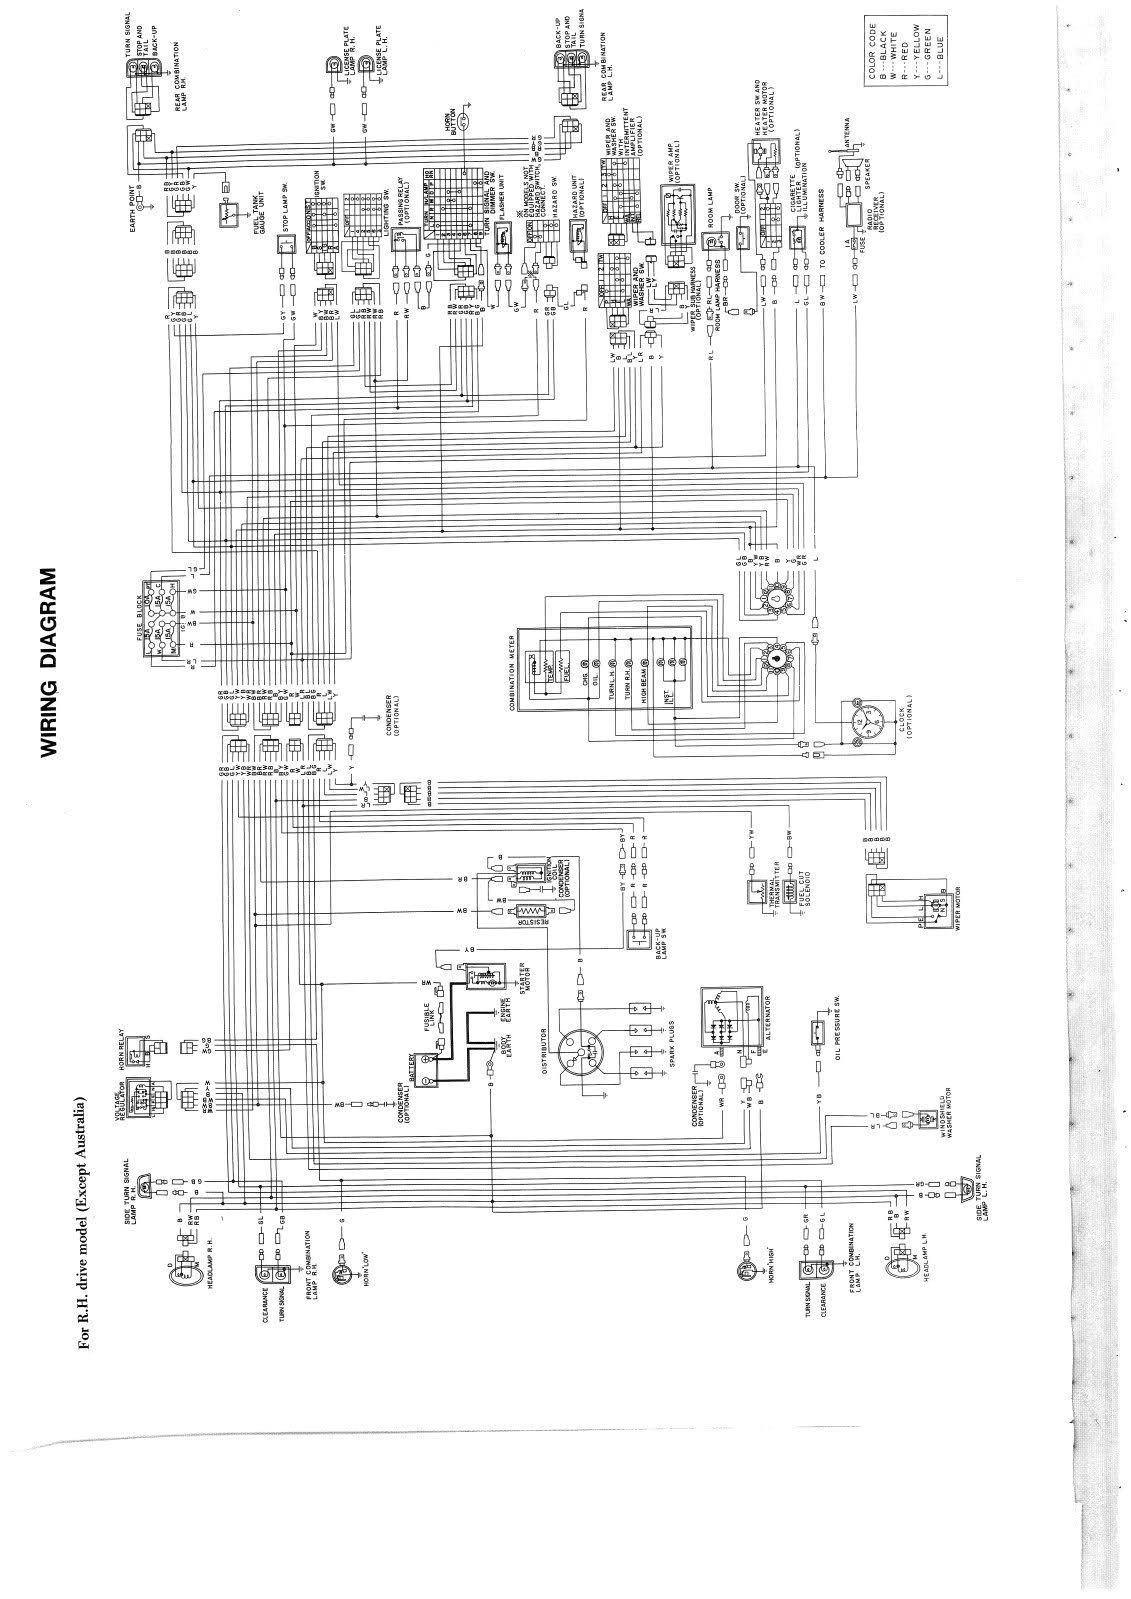 Cadillac Electrical Wiring Diagrams Abs Just Wirings Diagram Bendix Trailer 1993 Kes Auto Utility Harness